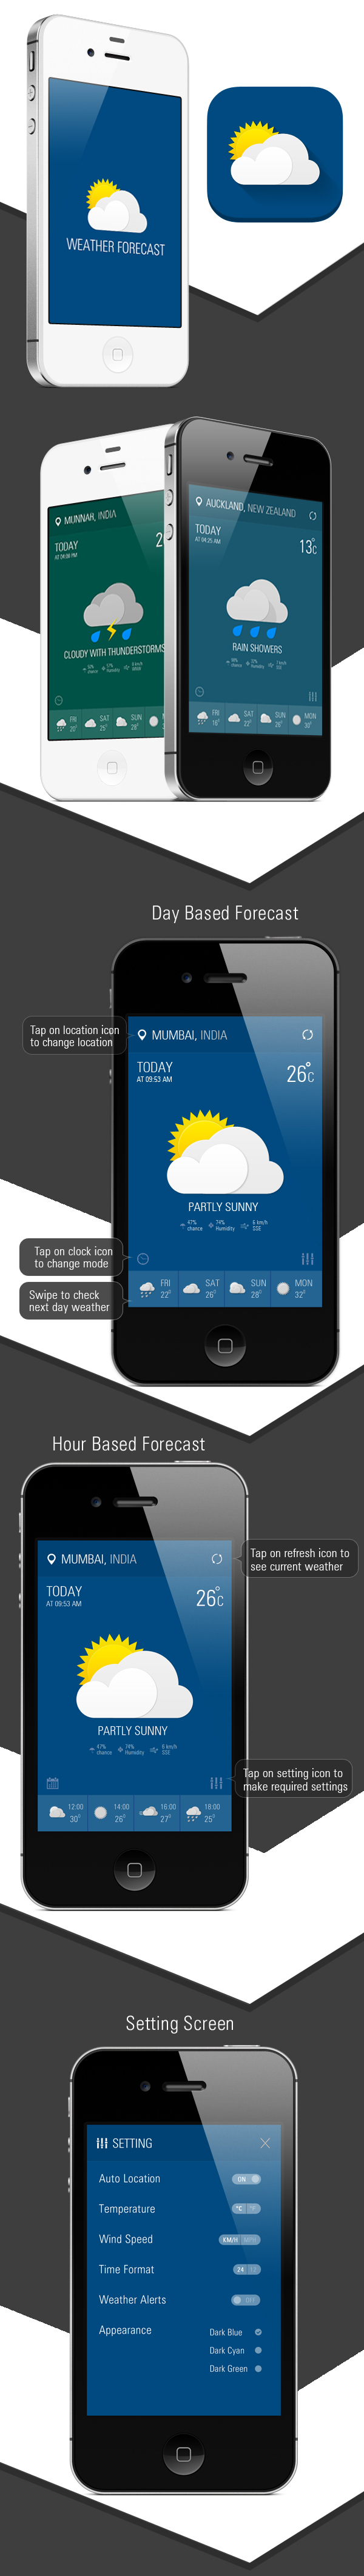 iPhone Weather Forecast App on Behance Weather forecast